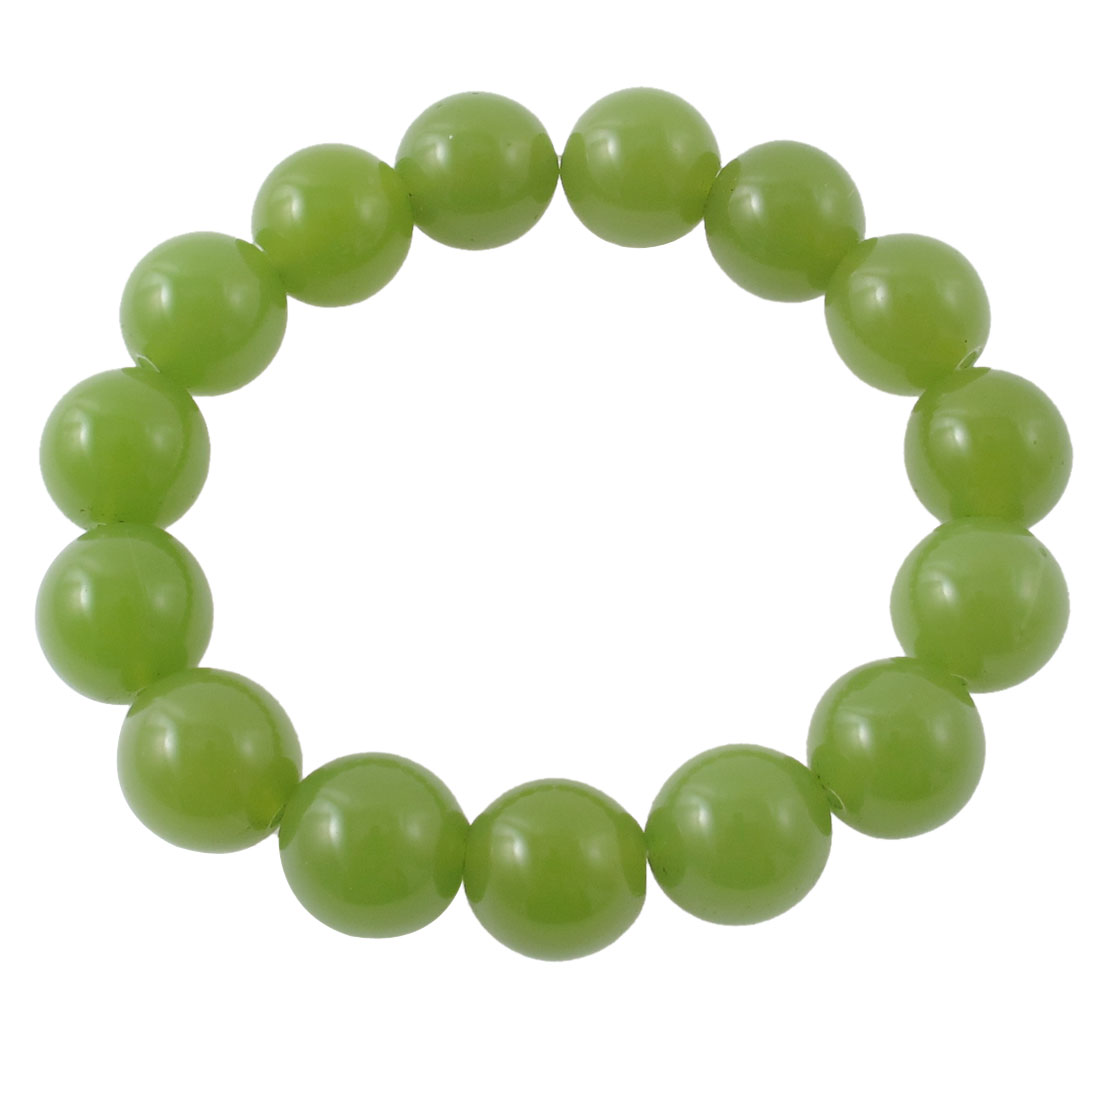 Woman Man Faux Jade Elastic 15 Round Beads Wrist Decor Bangle Bracelet Green